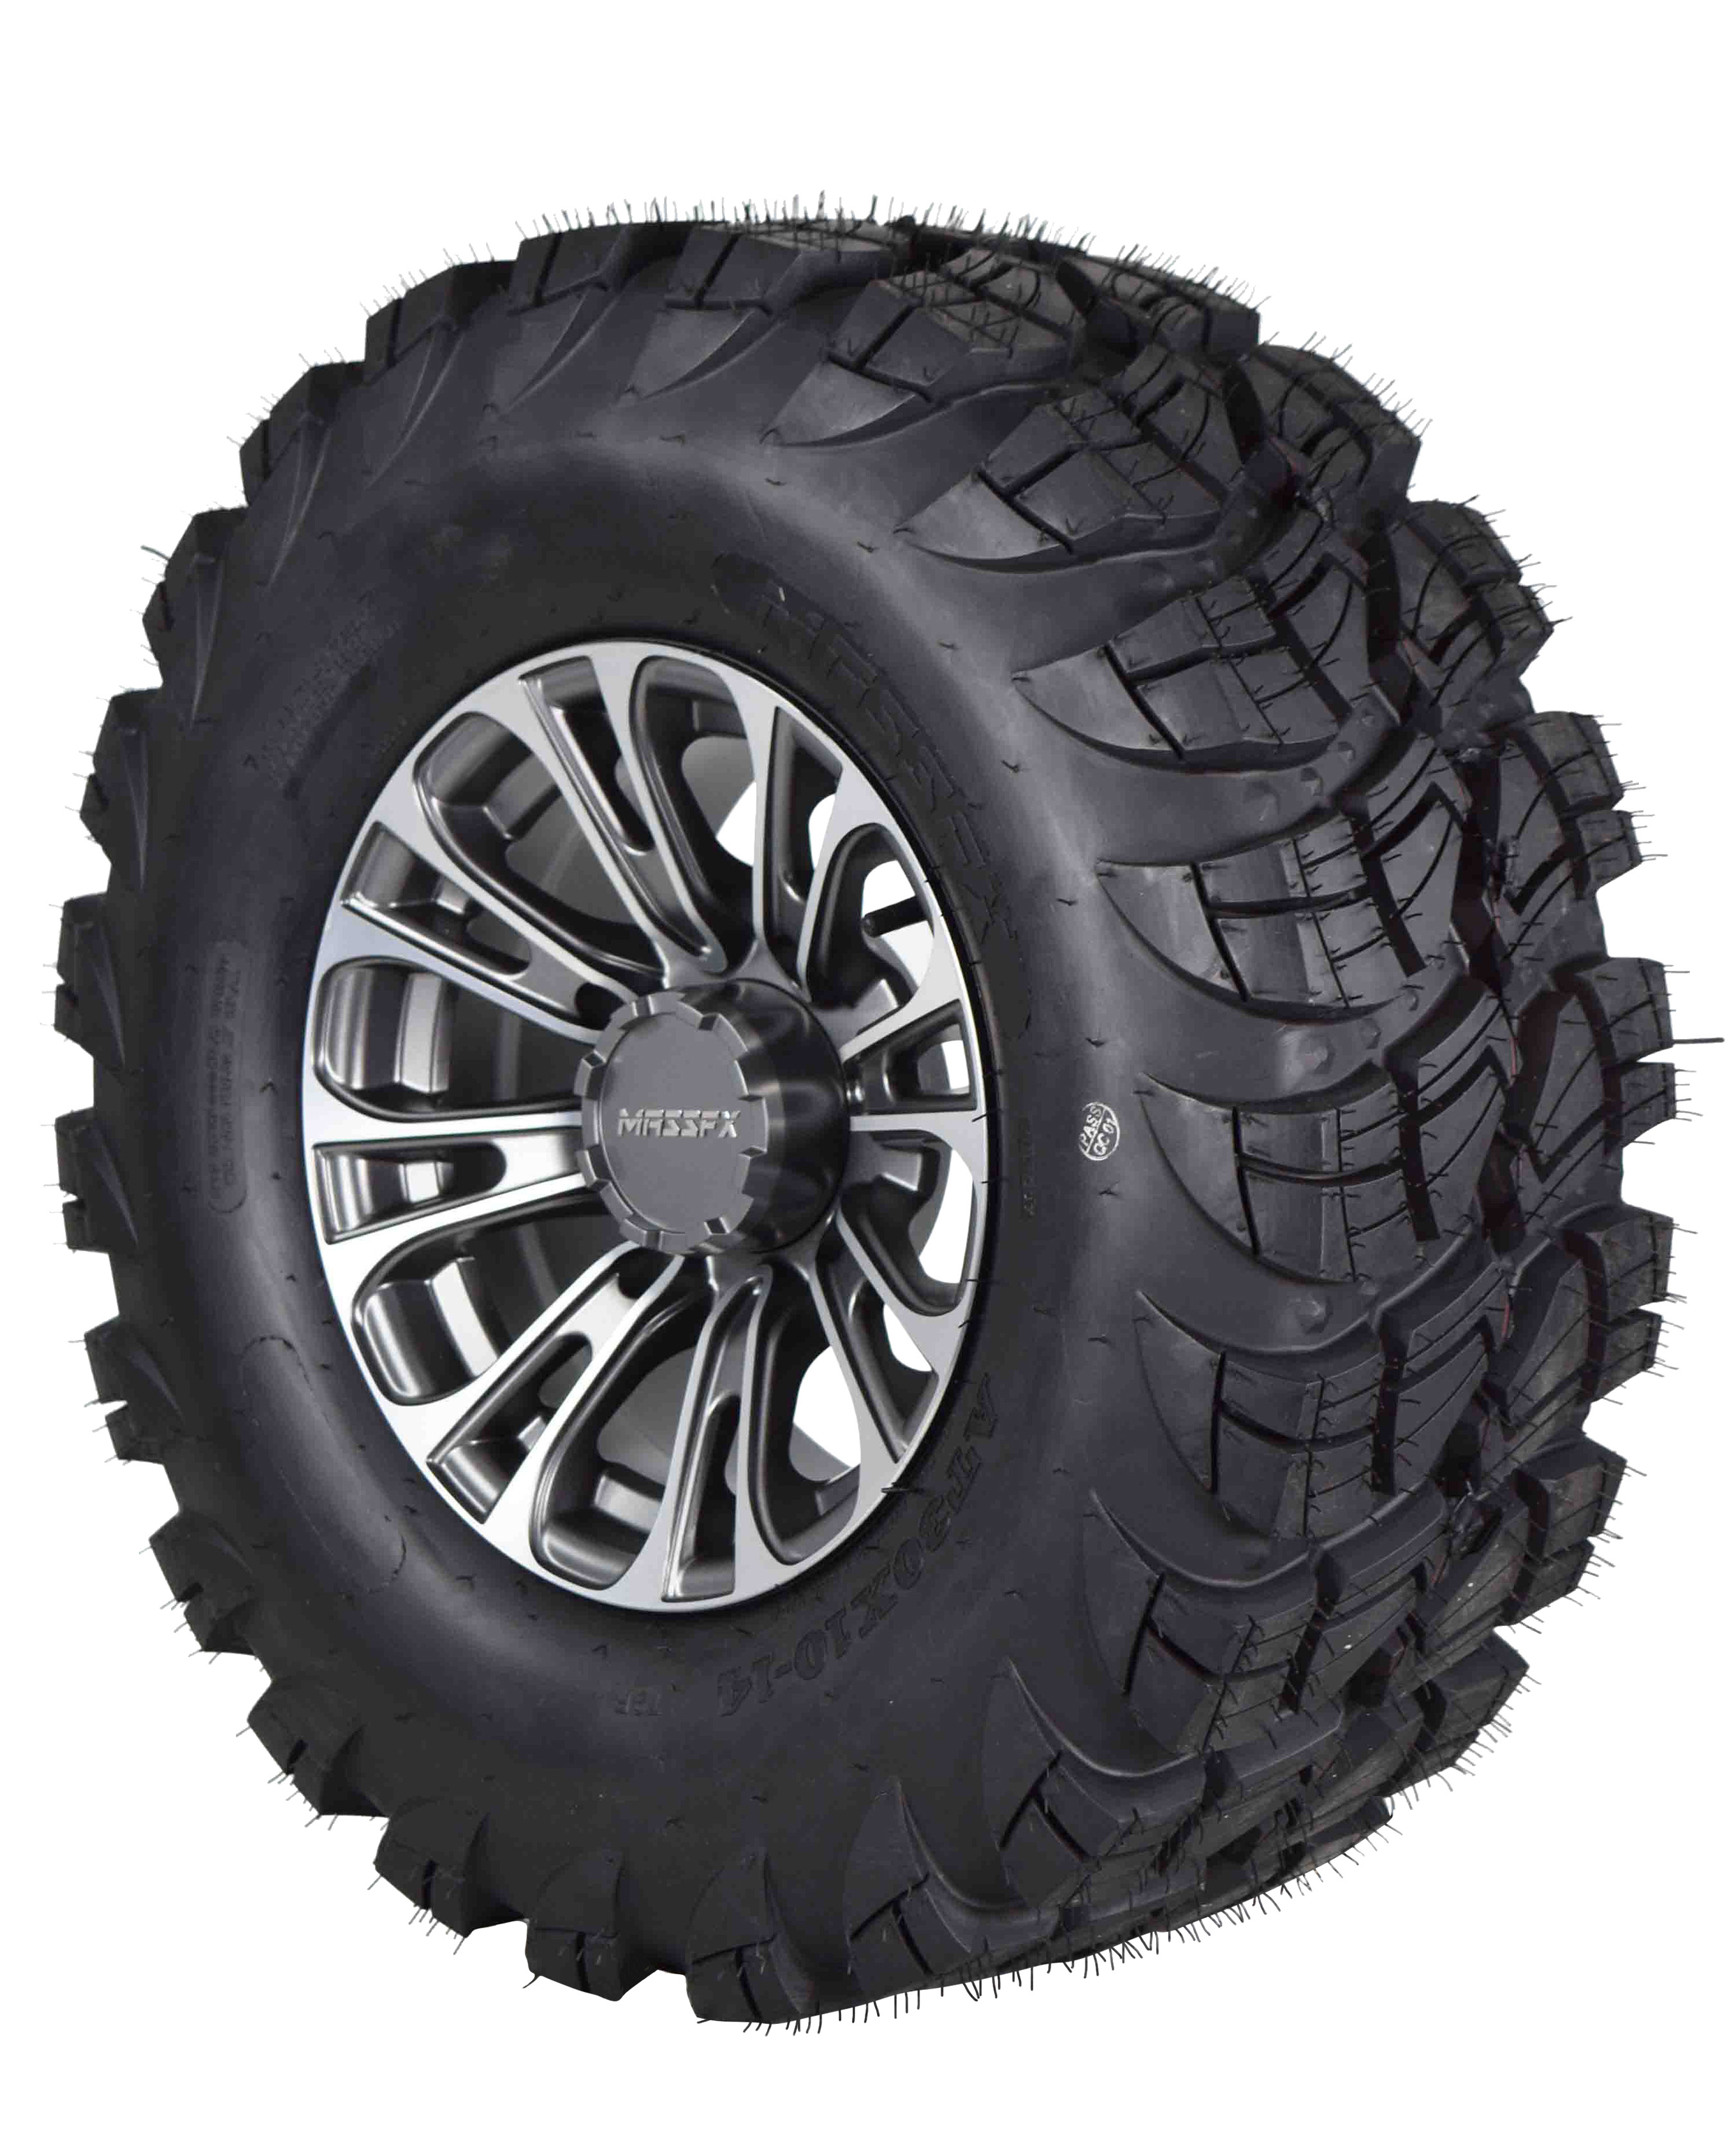 MASSFX-VY-30x10-14-Tire-w-Gunmetal-14x7-4-156-Rims-Wheel-Tire-Kit-with-Spare-image-2